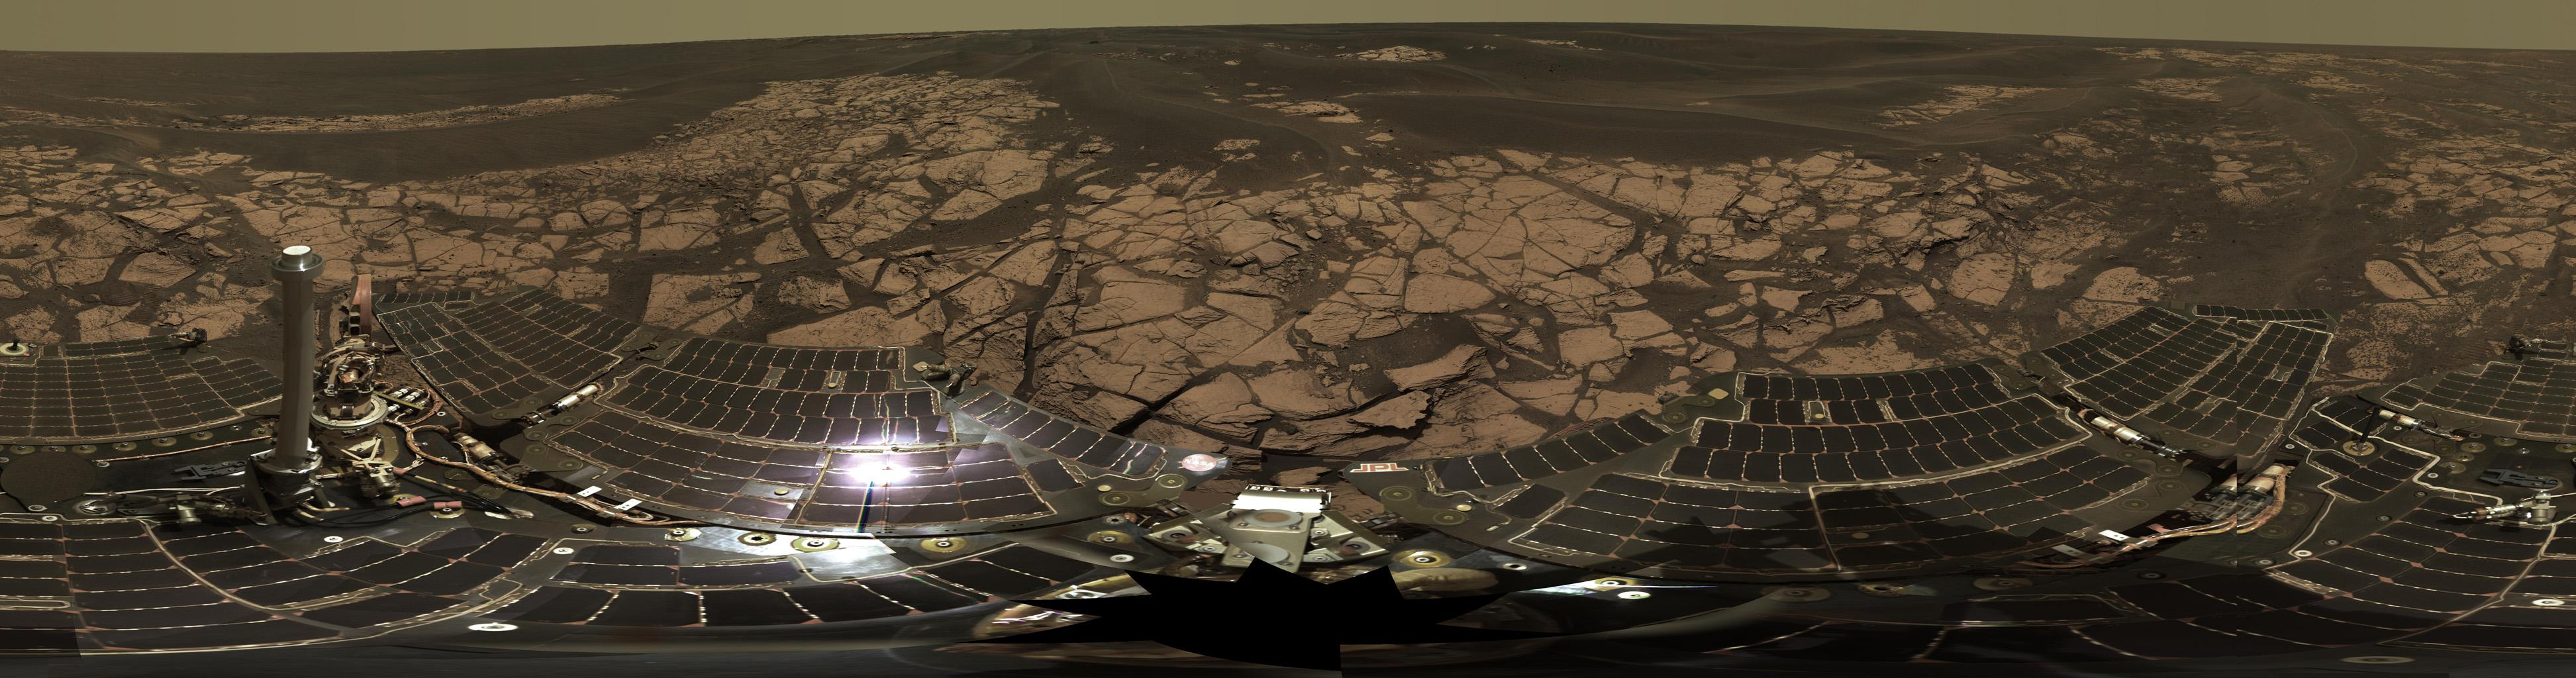 This is the Opportunity panoramic camera's 'Erebus Rim' panorama, acquired on sols 652 to 663 (Nov. 23 to Dec. 5, 2005 ), as NASA's Mars Exploration Rover Opportunity was exploring sand dunes and outcrop rocks in Meridiani Planum.